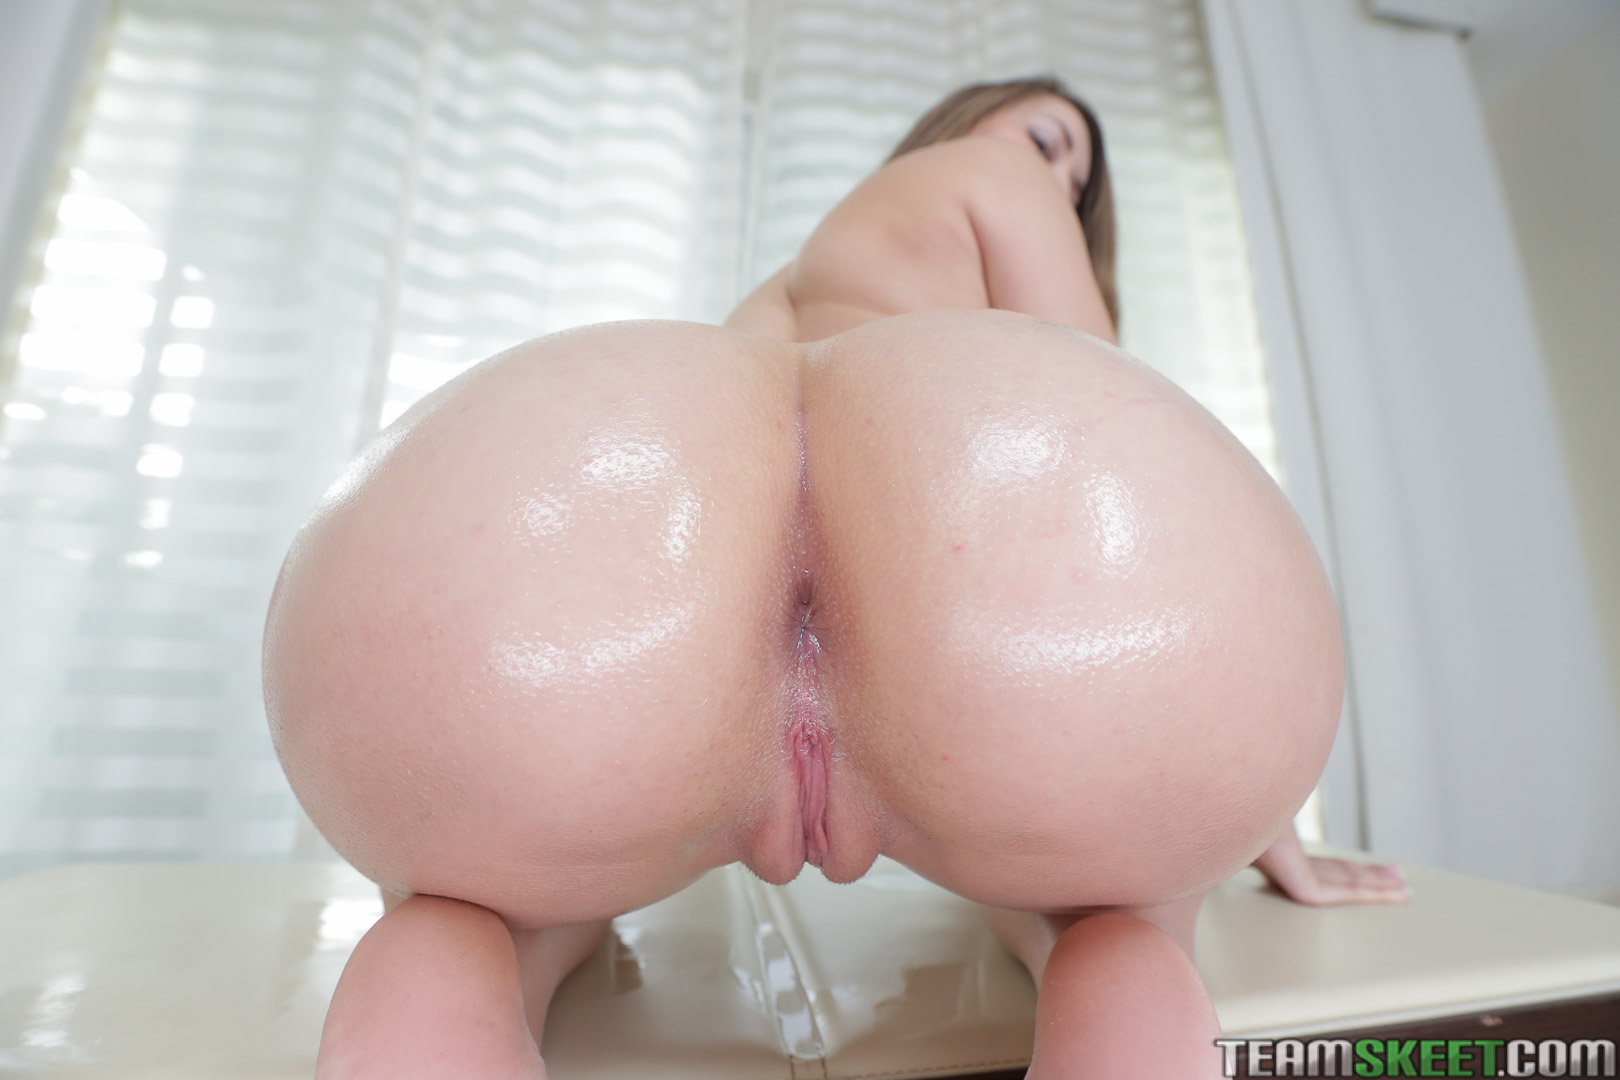 POV big butt young blonde